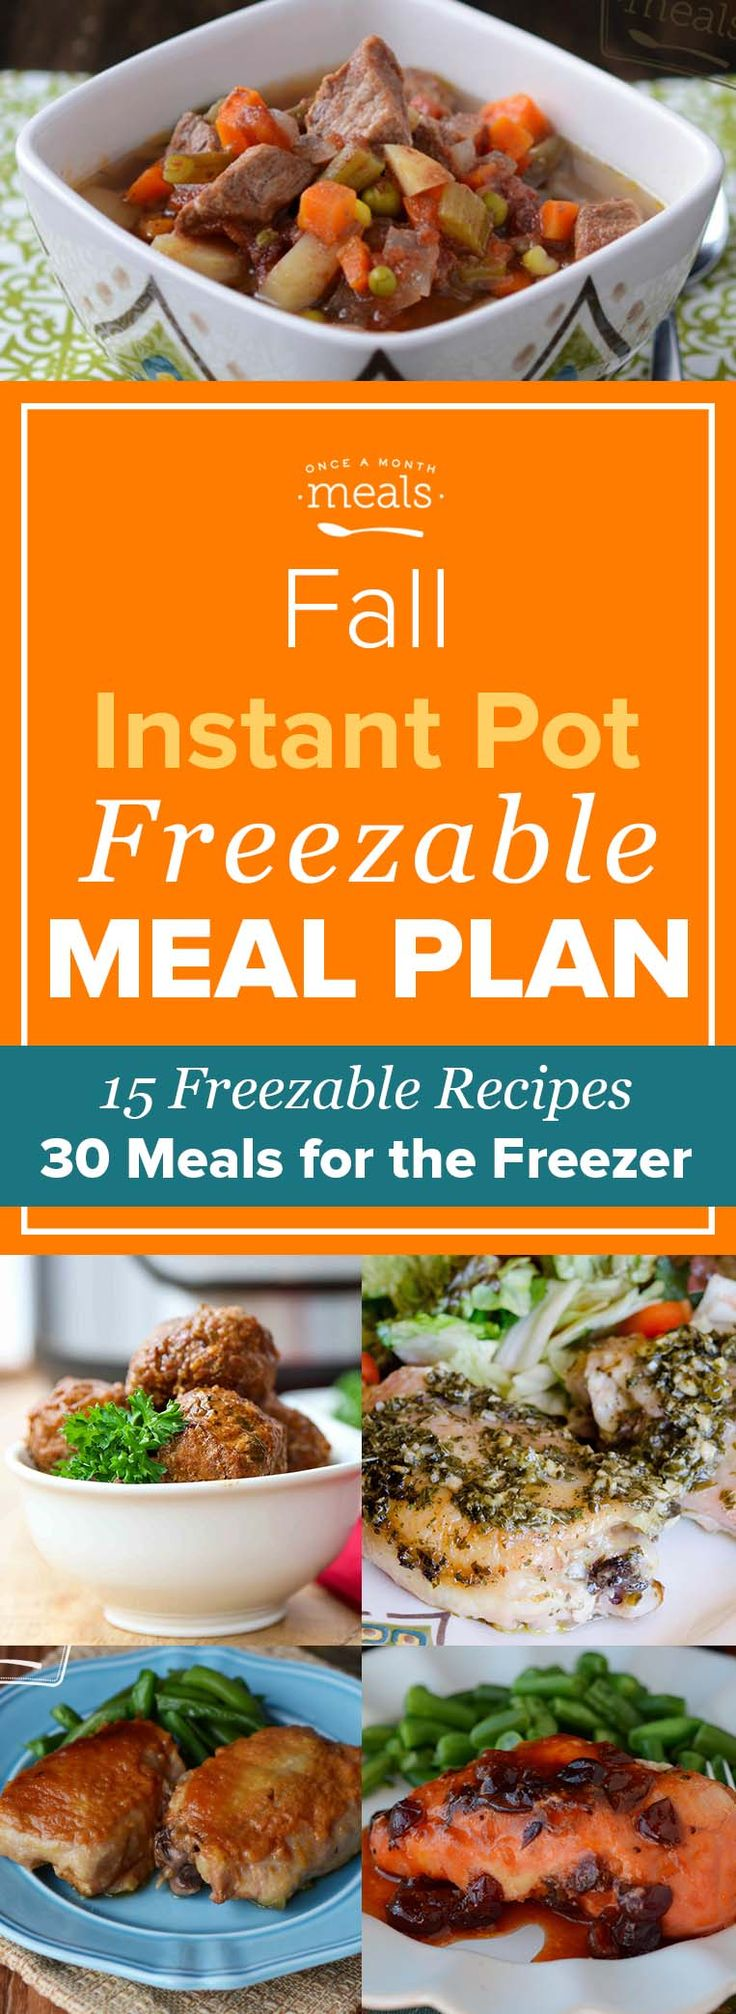 From enchiladas with pumpkin cream sauce to cranberry chicken, these instant pot freezer meal recipes make easy, comforting meals you can cook from frozen! via @onceamonthmeals